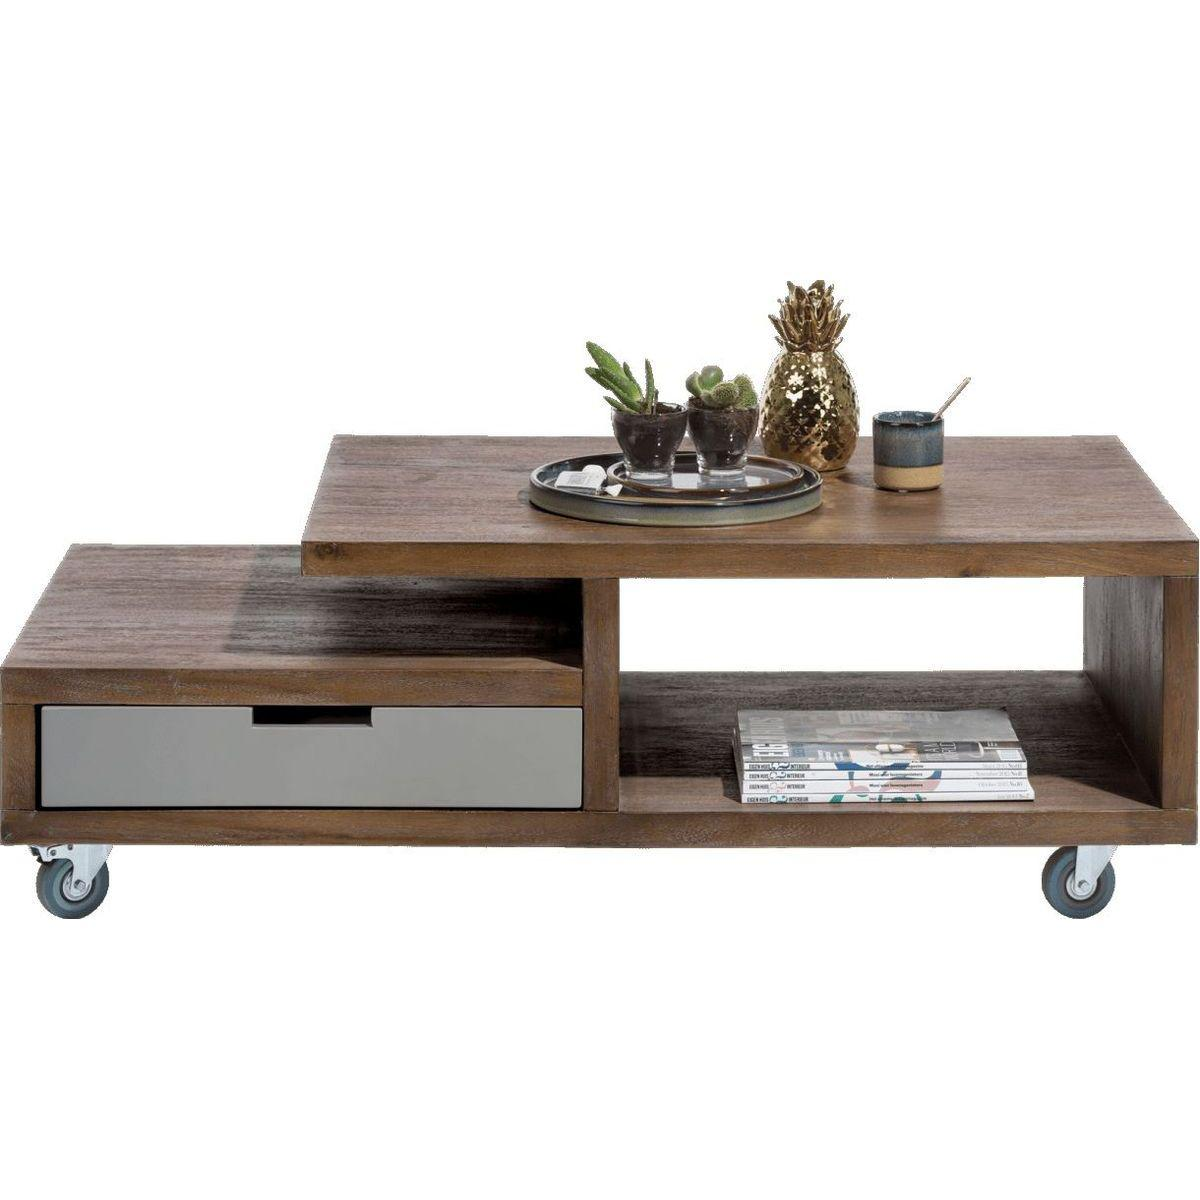 Table basse BOX HetH 60x120cm Tramwood Walnut gris